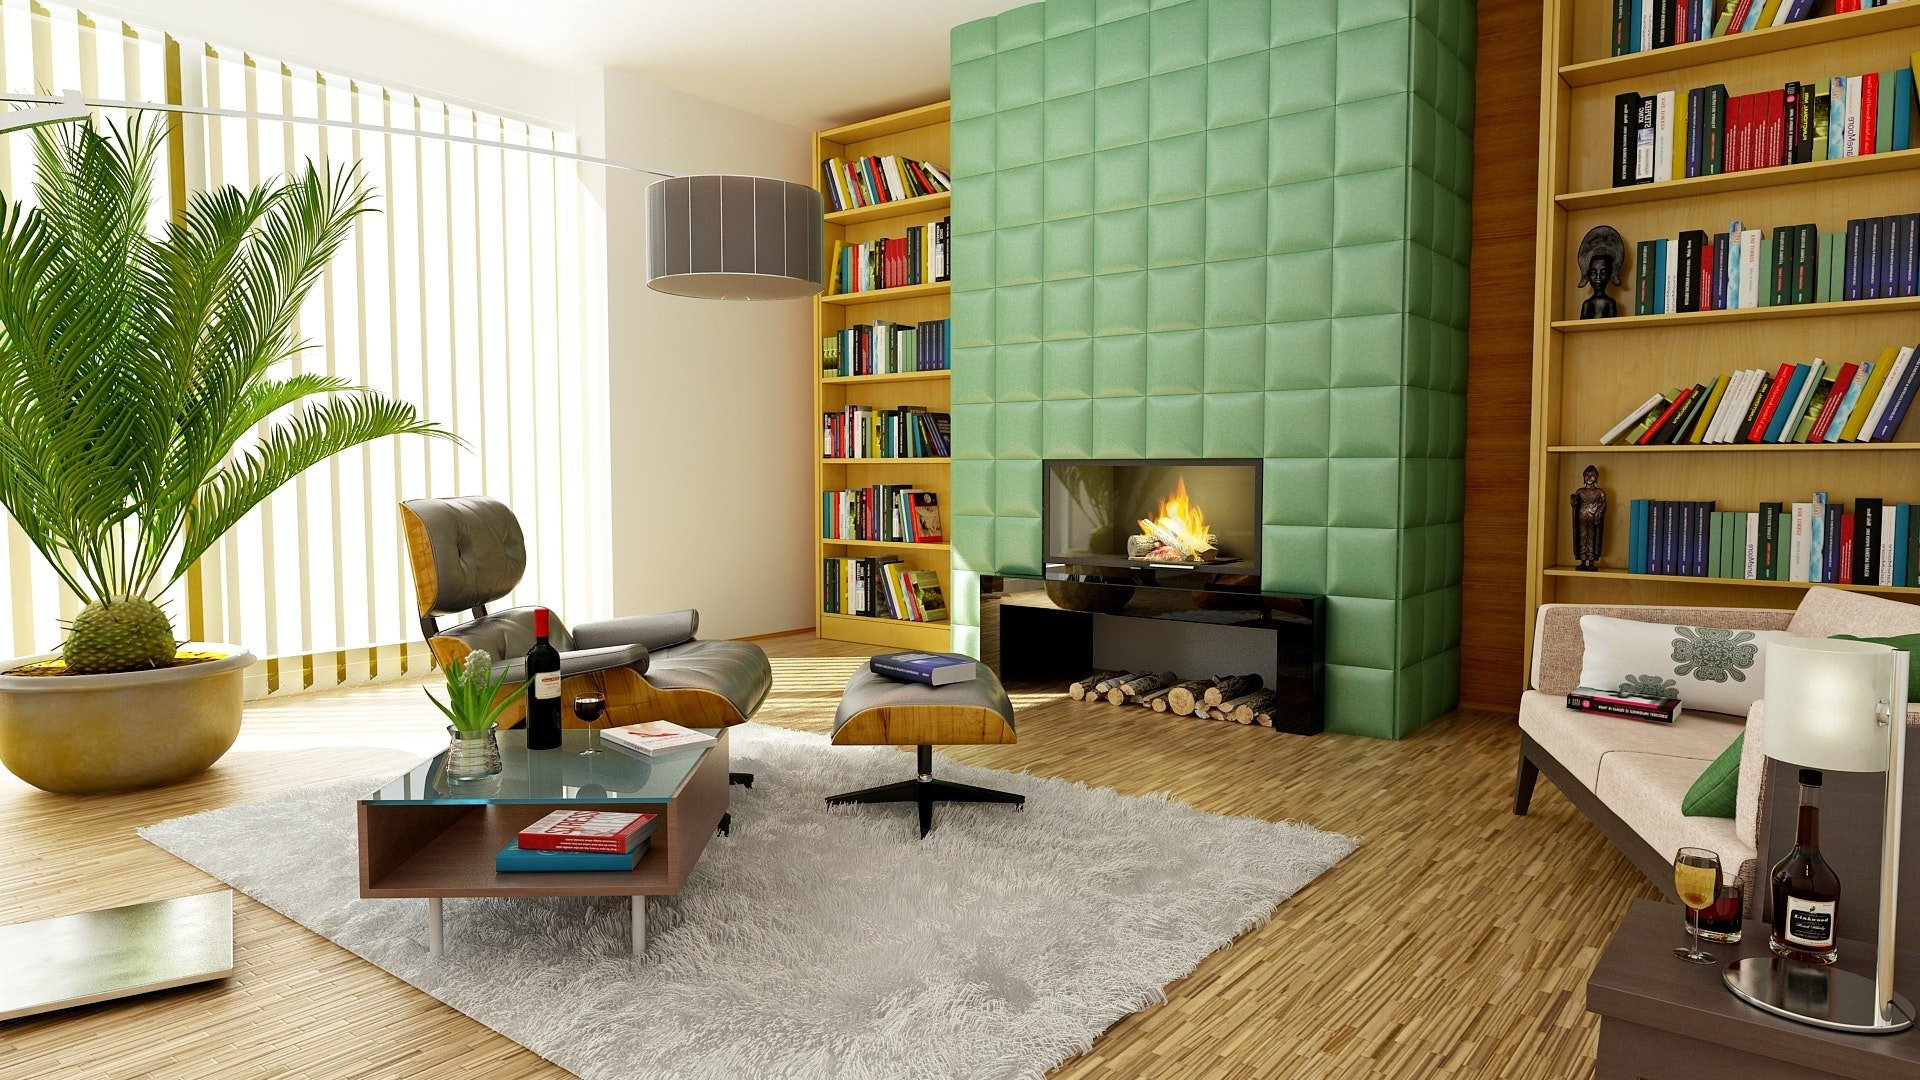 Real Estate Home Staging: The Art of Preparing a Home